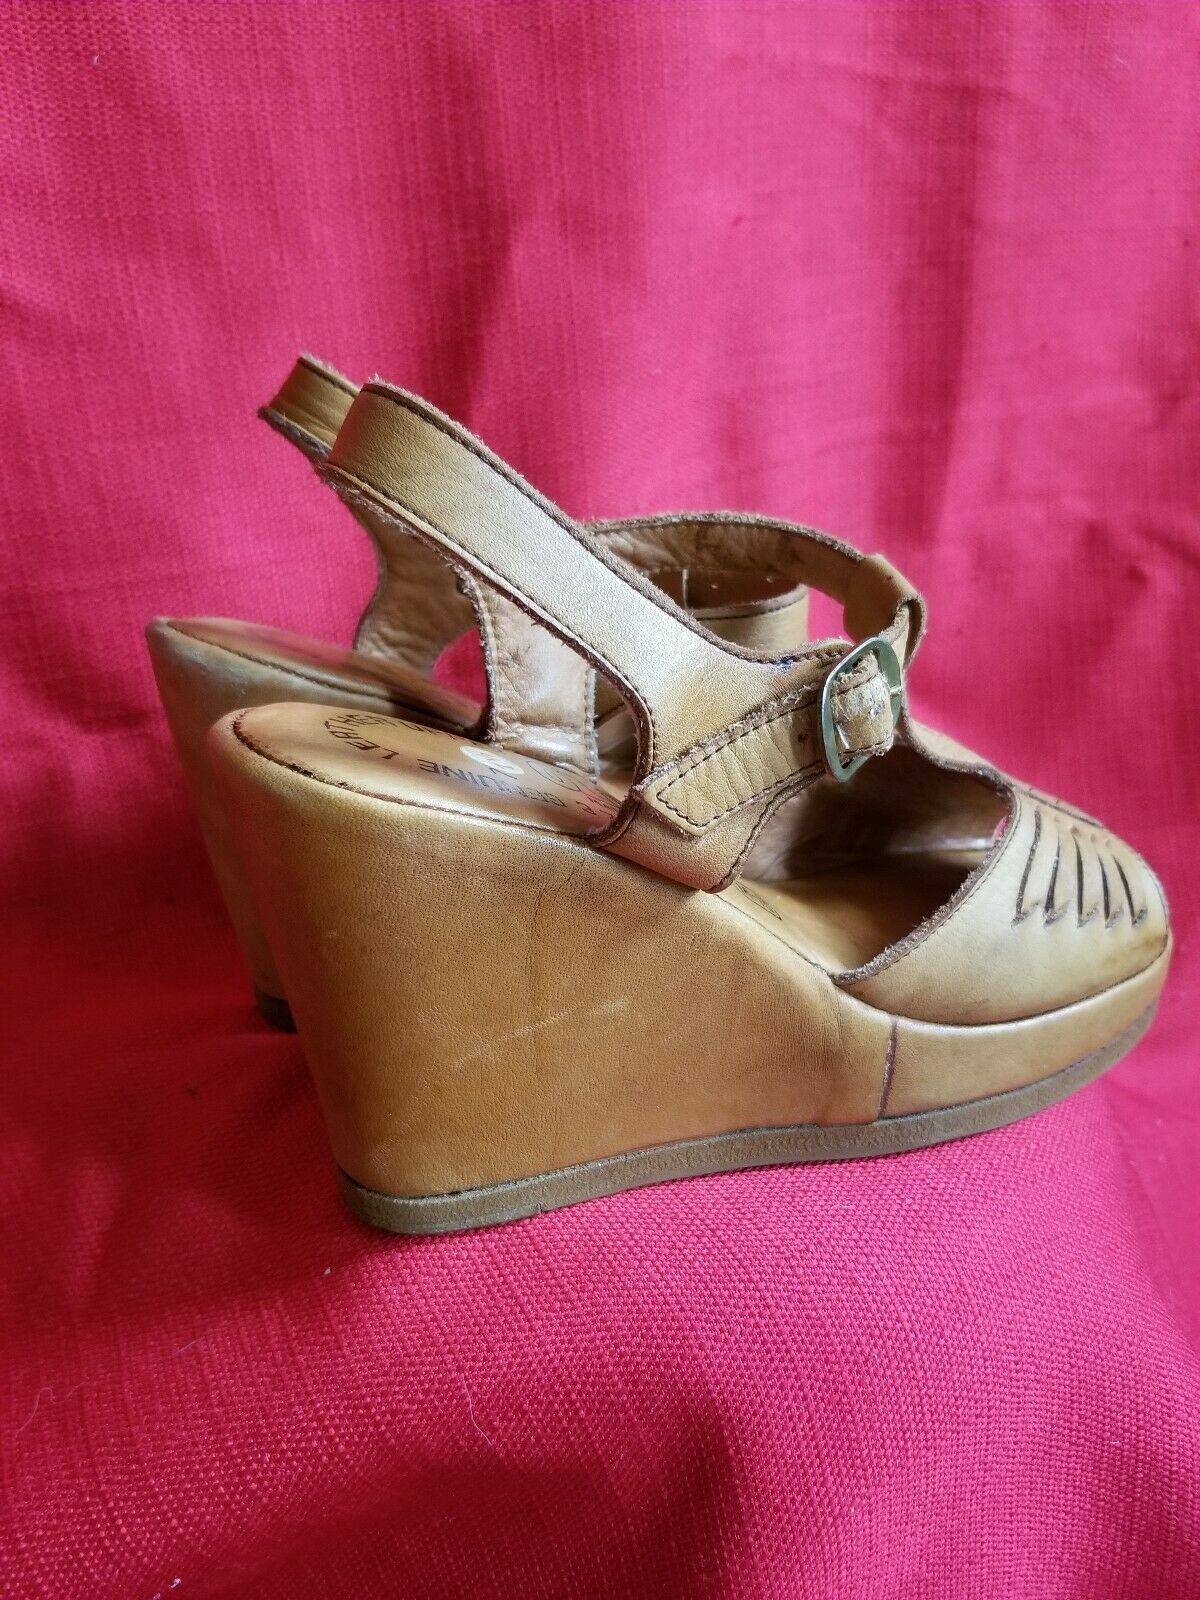 Vtg 1970s does 40s Leather Wedge Sandals Size 7.5… - image 3